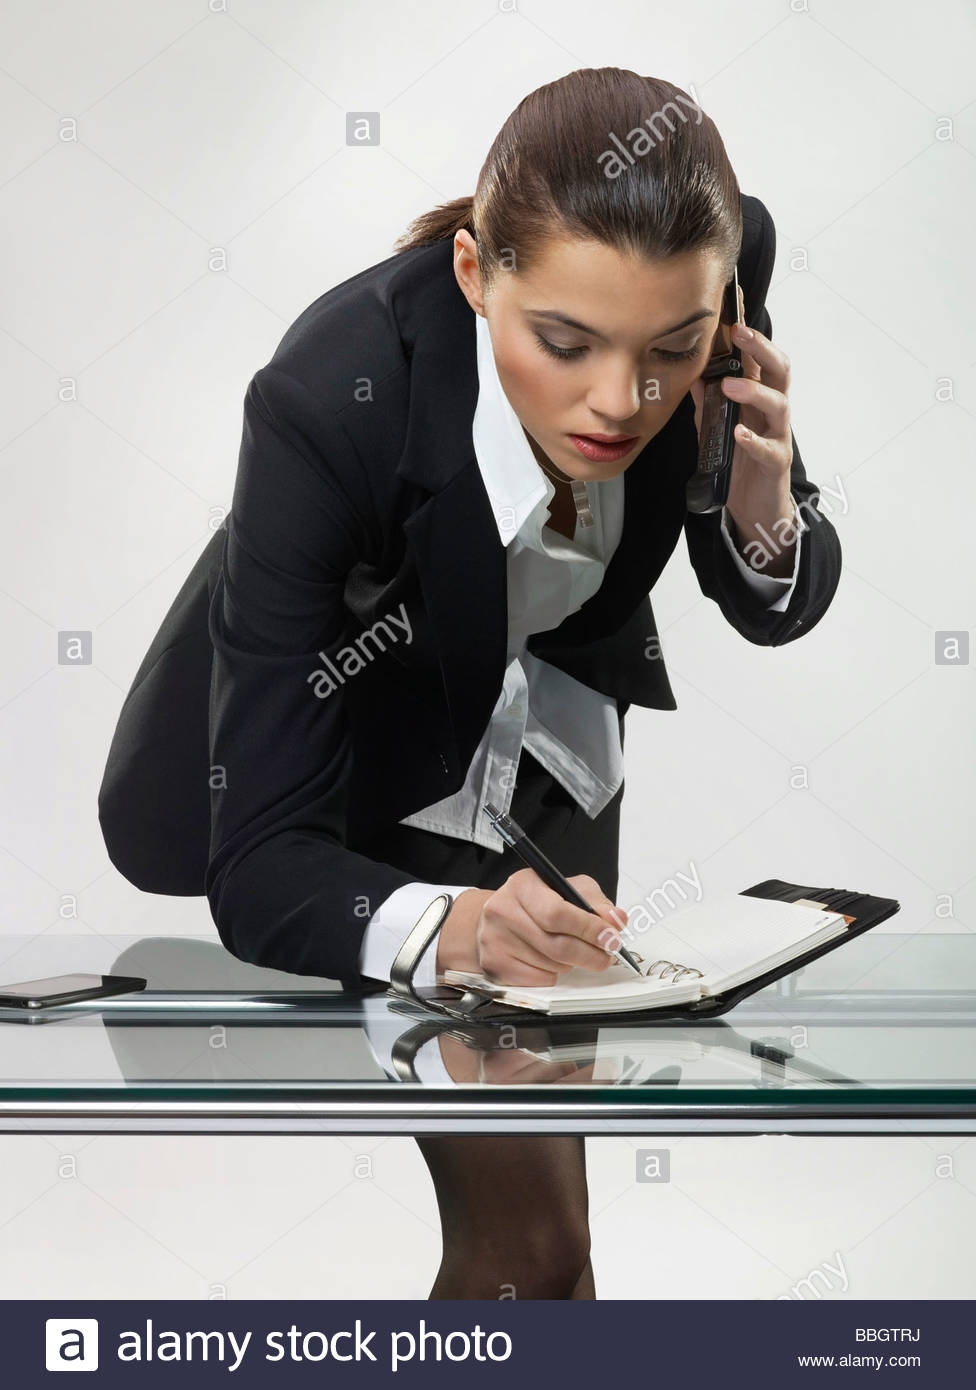 Businesswoman scheduling appointment - Stock Image